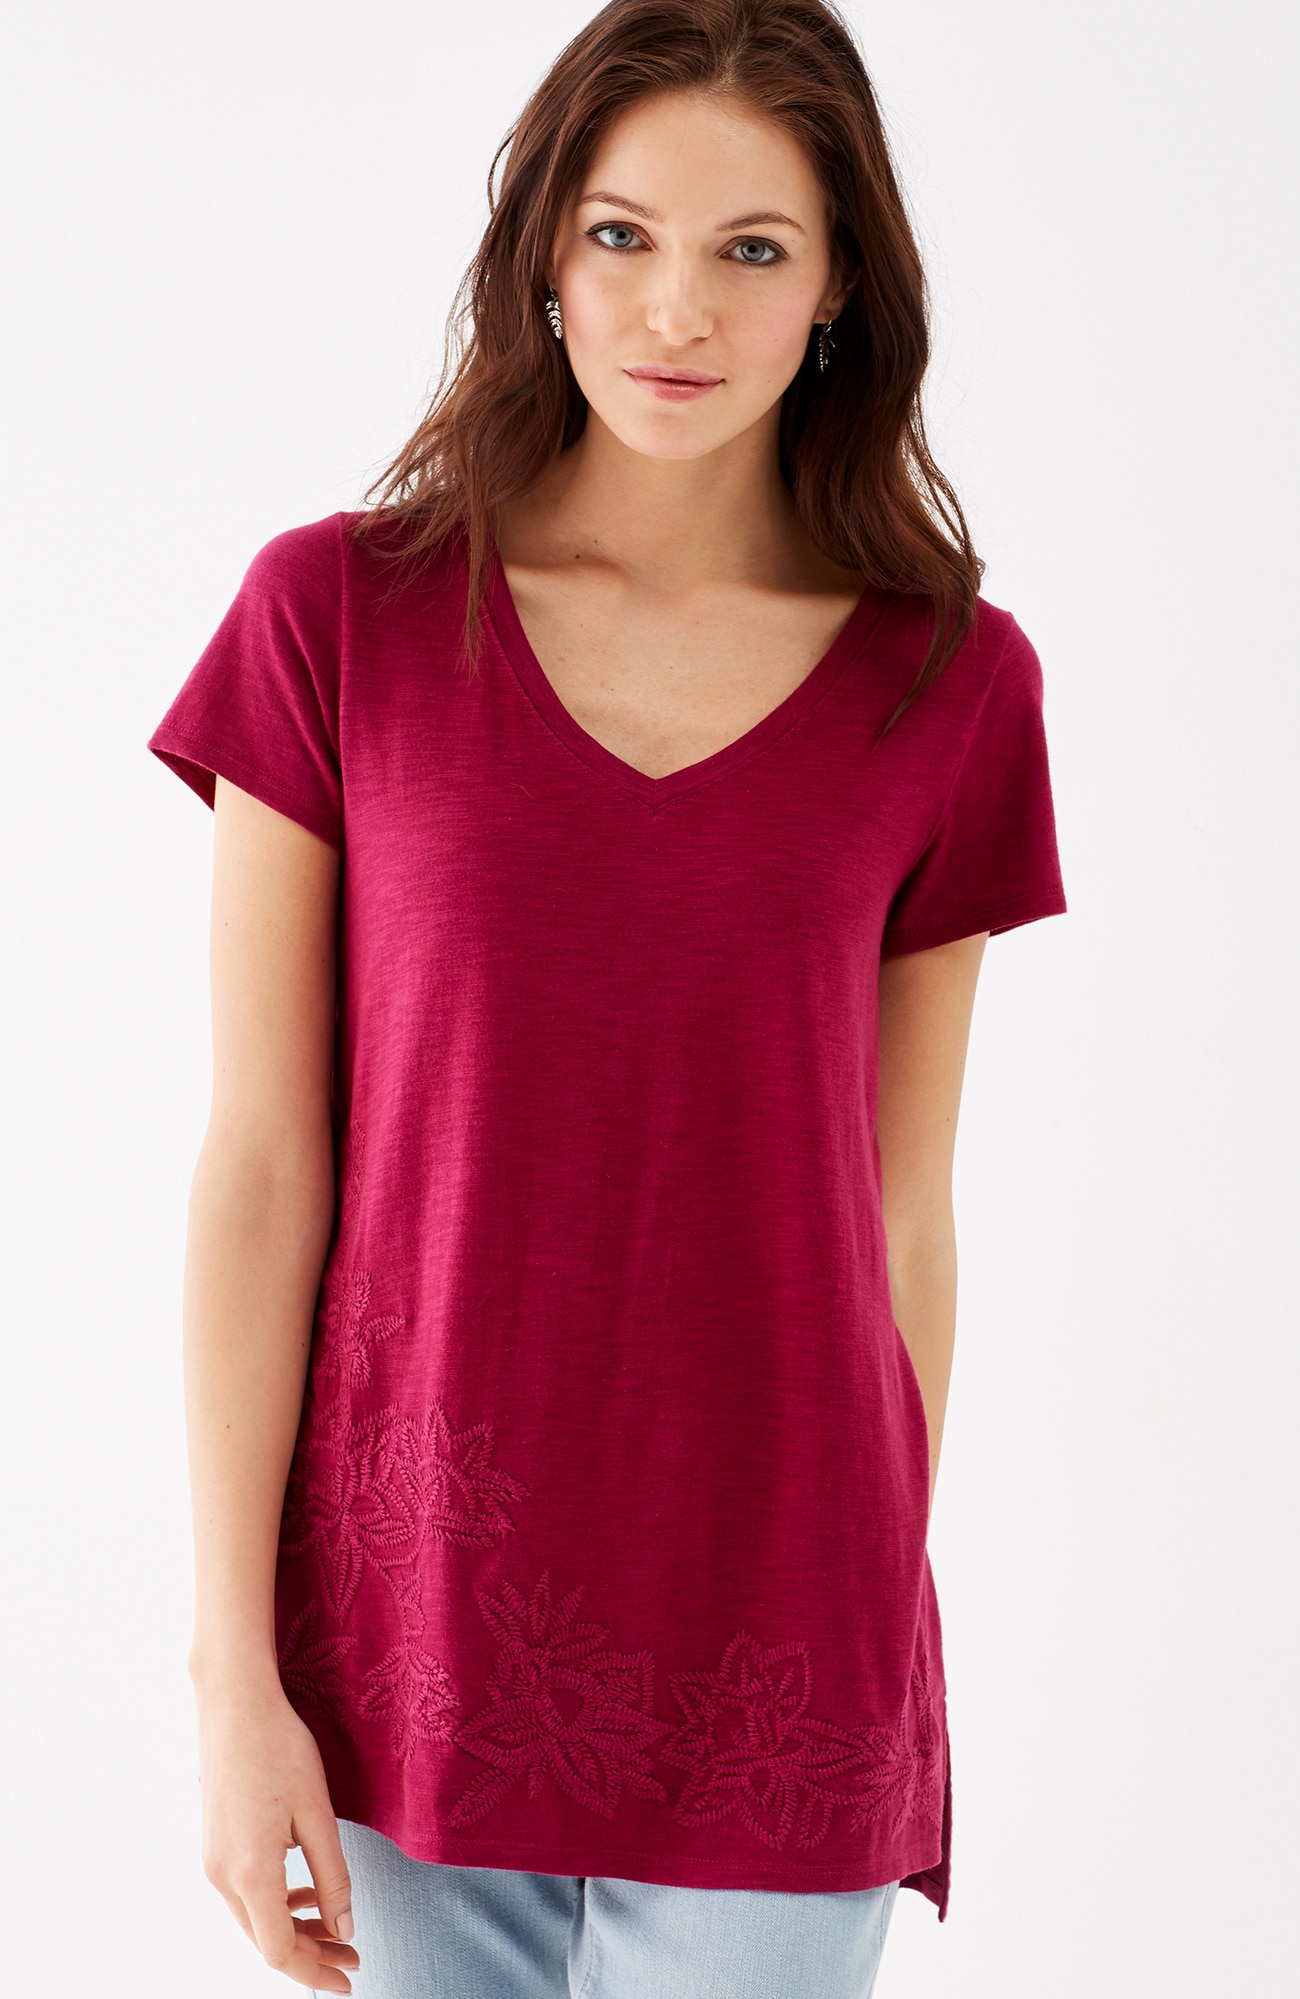 embroidered V-neck tee